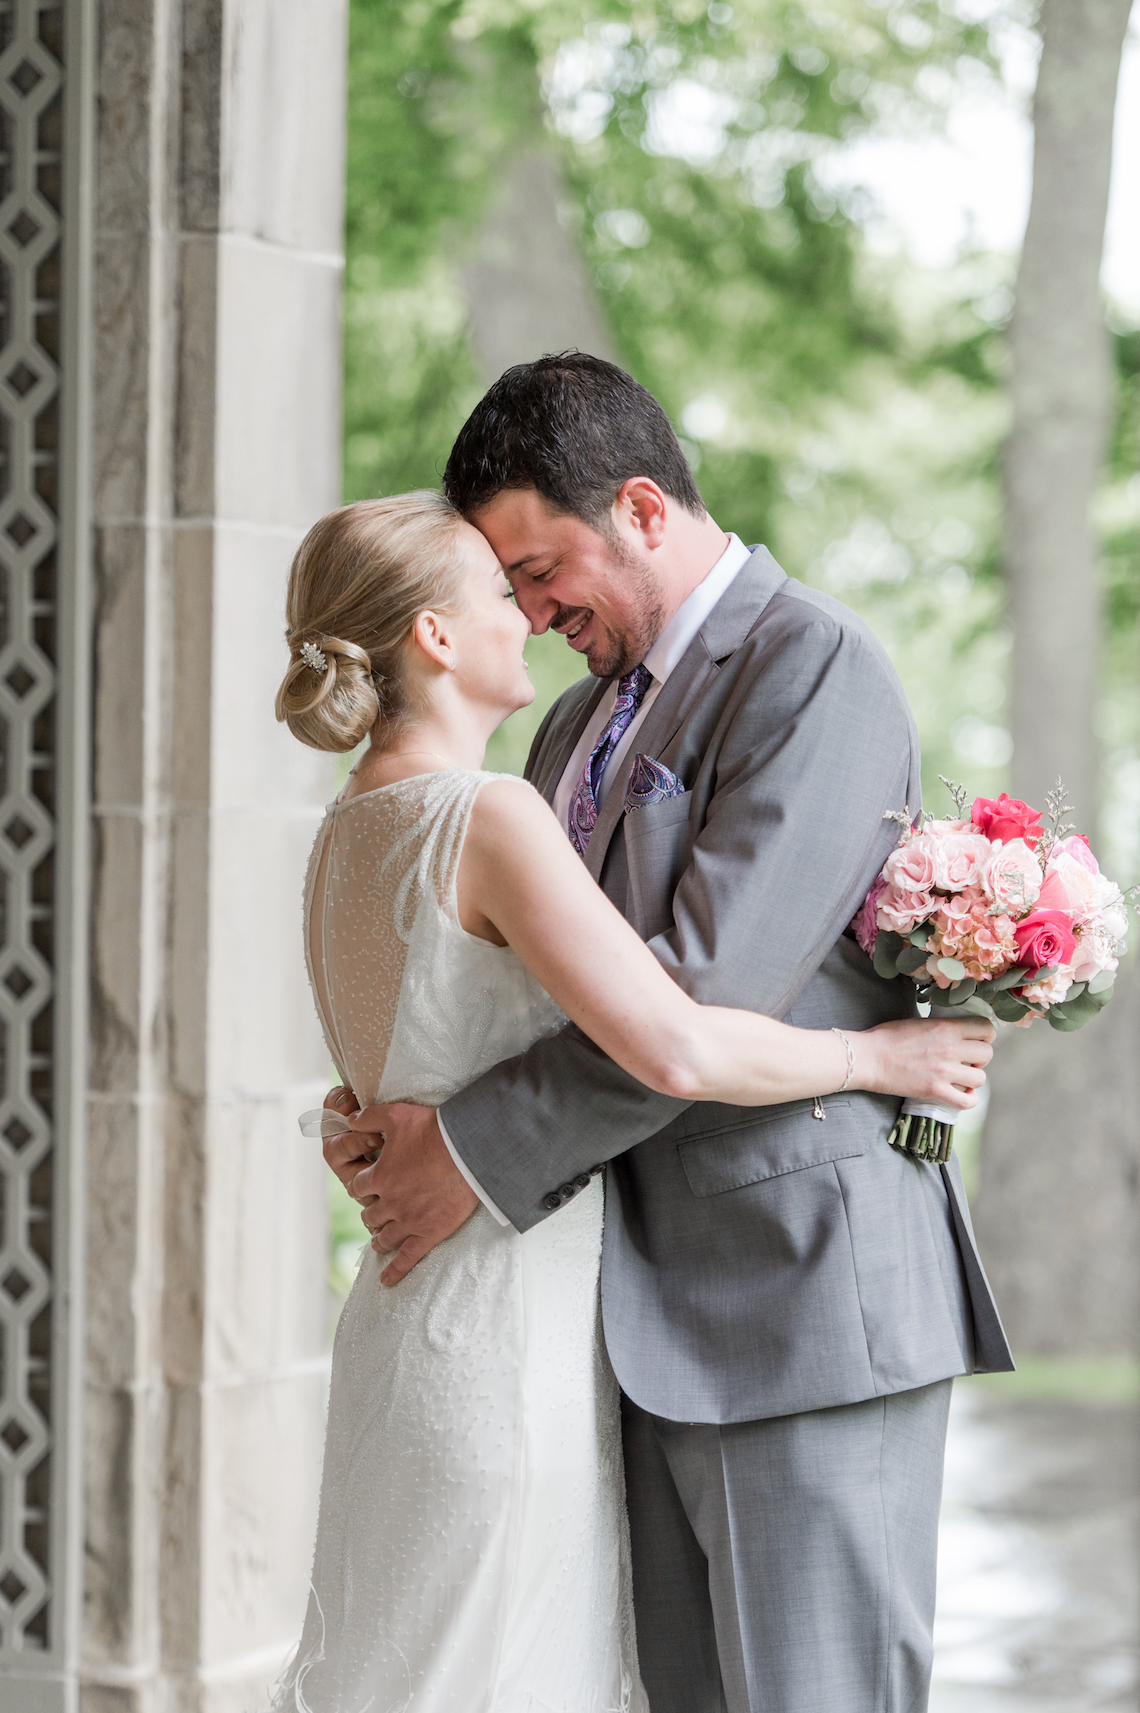 Upscale Art Deco Rhode Island Wedding With A Feathered Dress – Lynne Reznick Photography 8